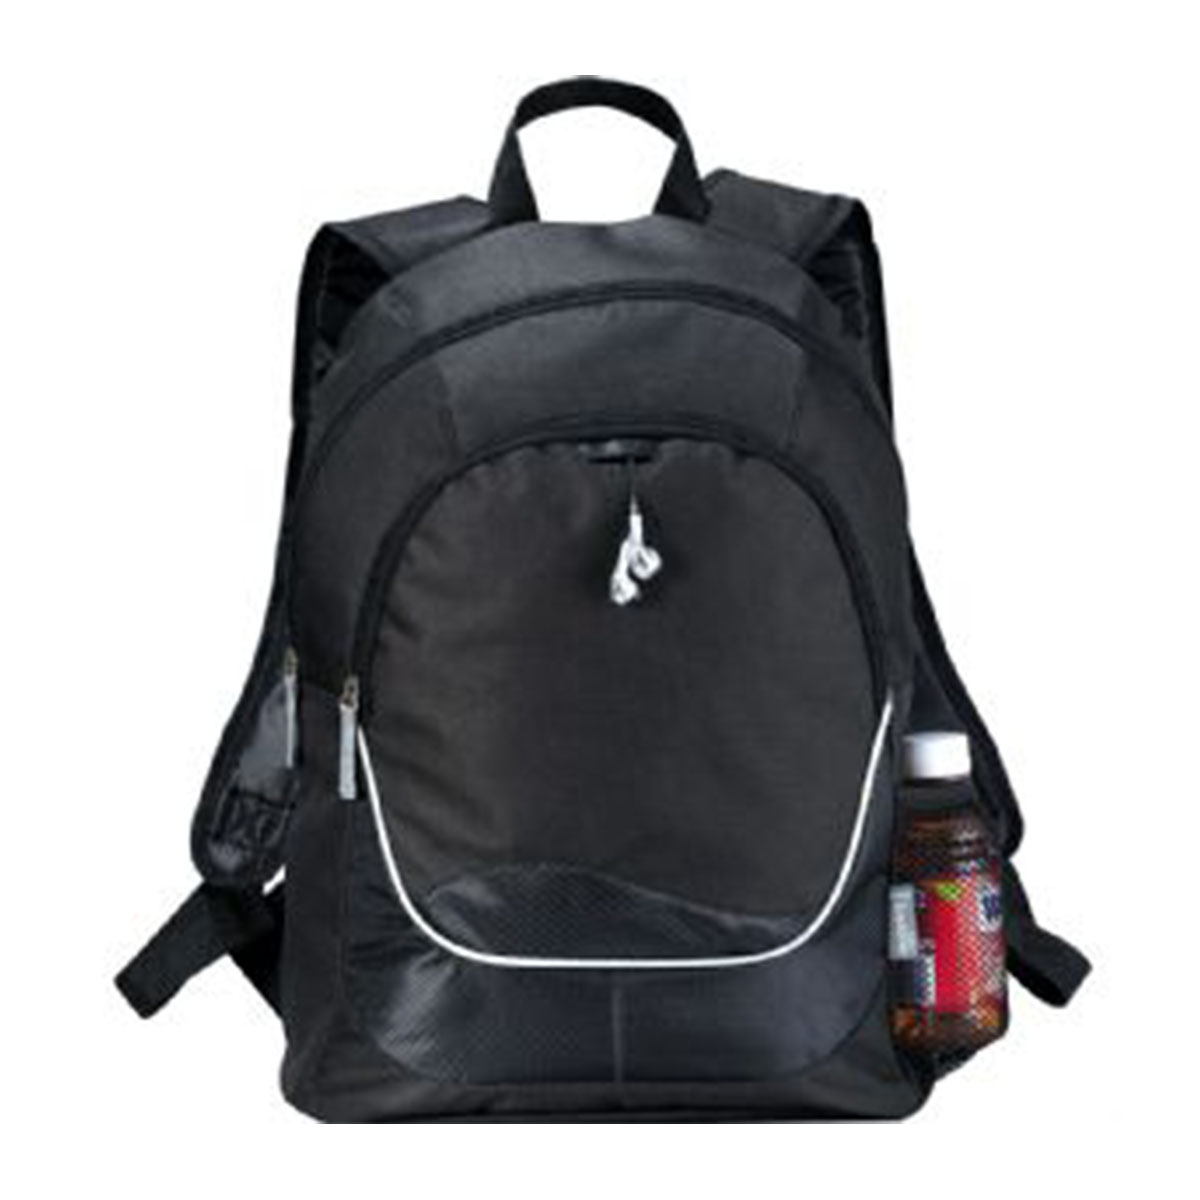 Explorer Backpack-Black with white trim.